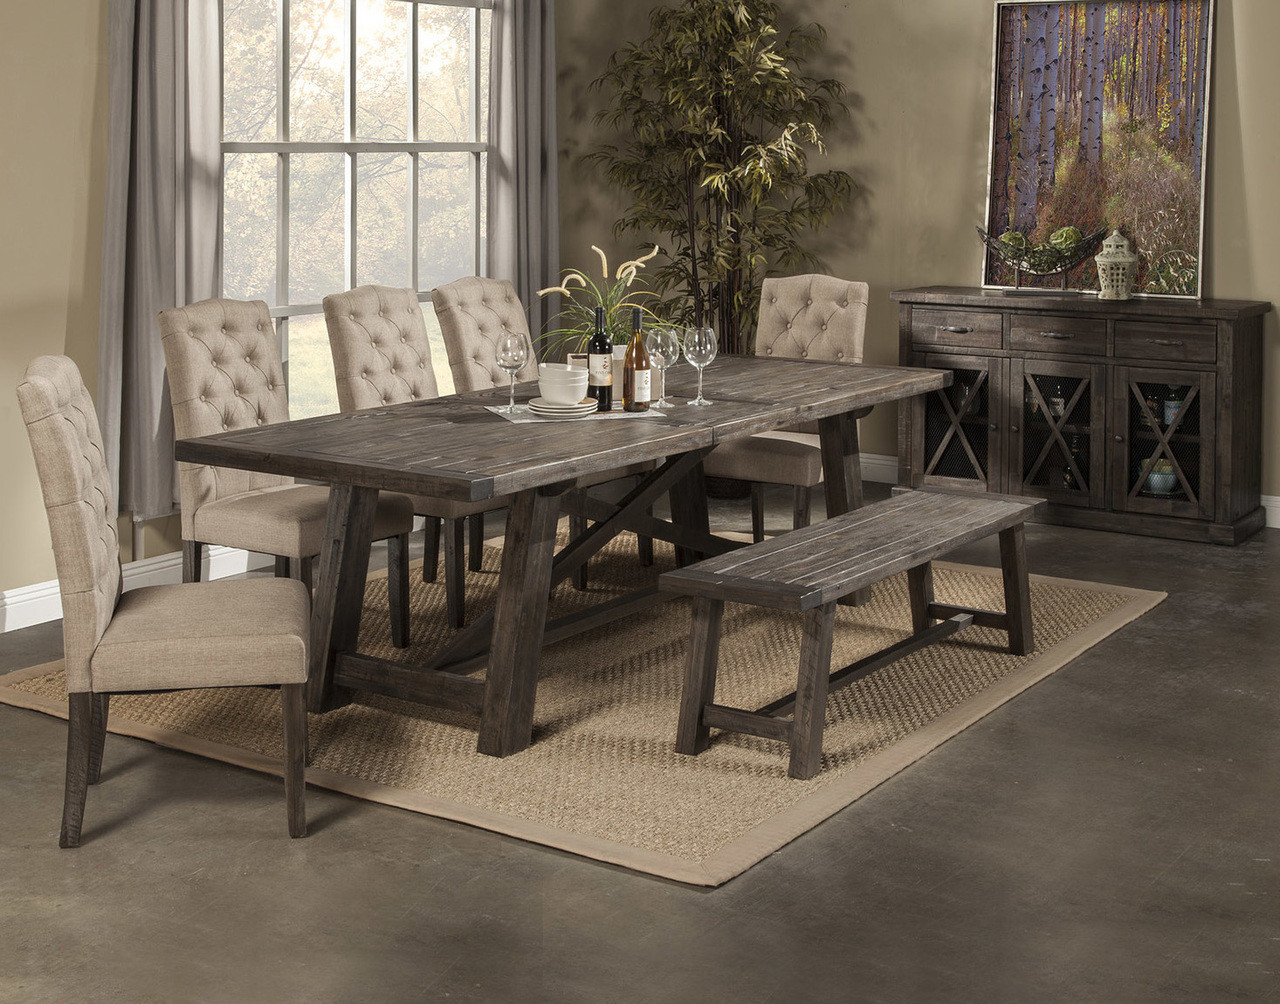 chair bench table stool kidkraft high newberry dining with 4 chairs and